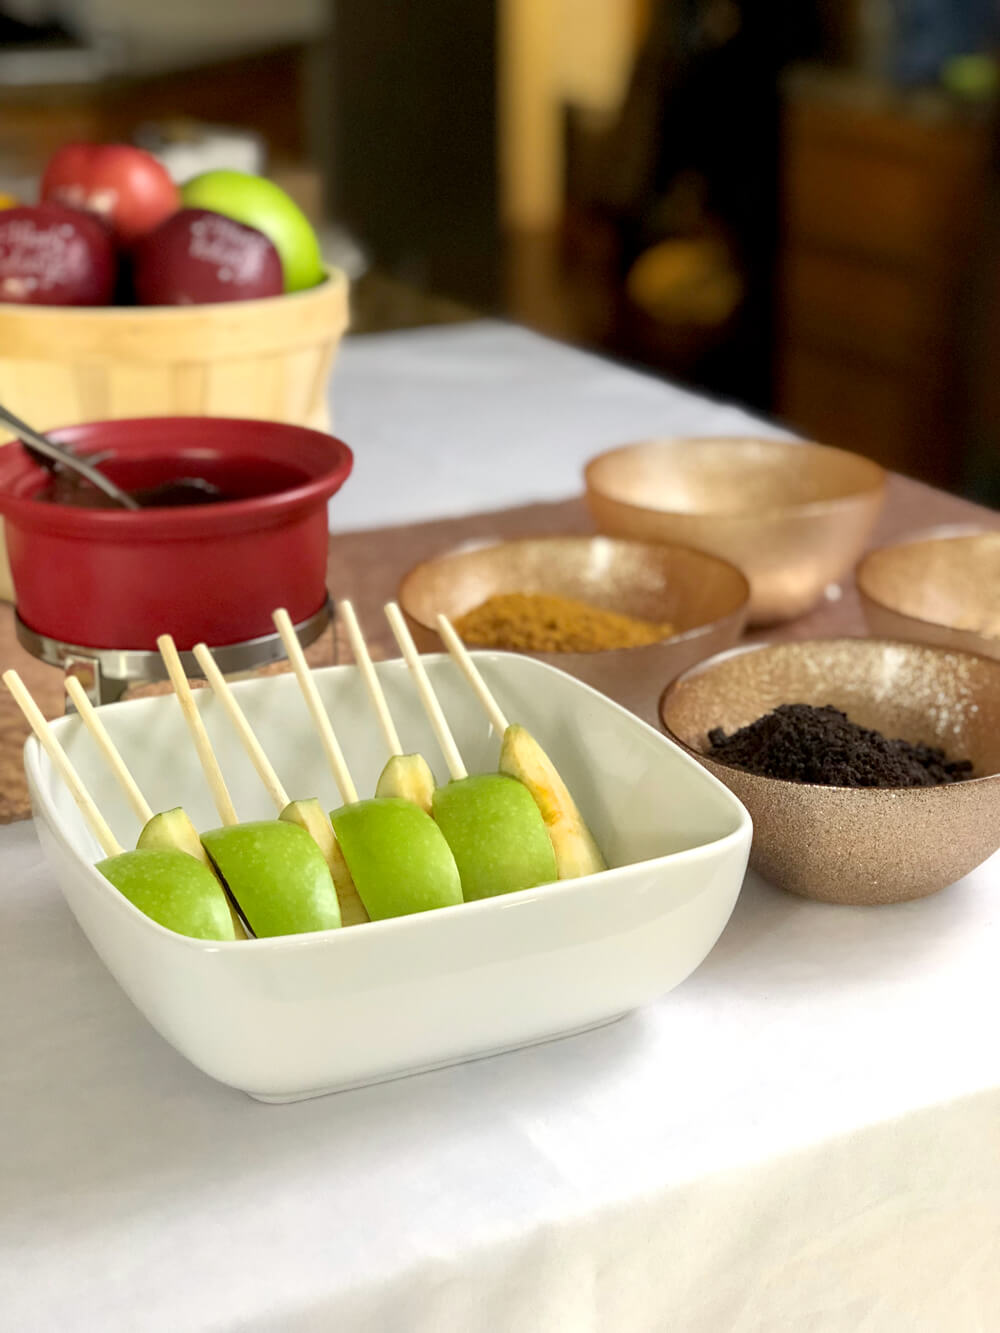 Sliced granny smith apples for girls night harvest party menu ideas